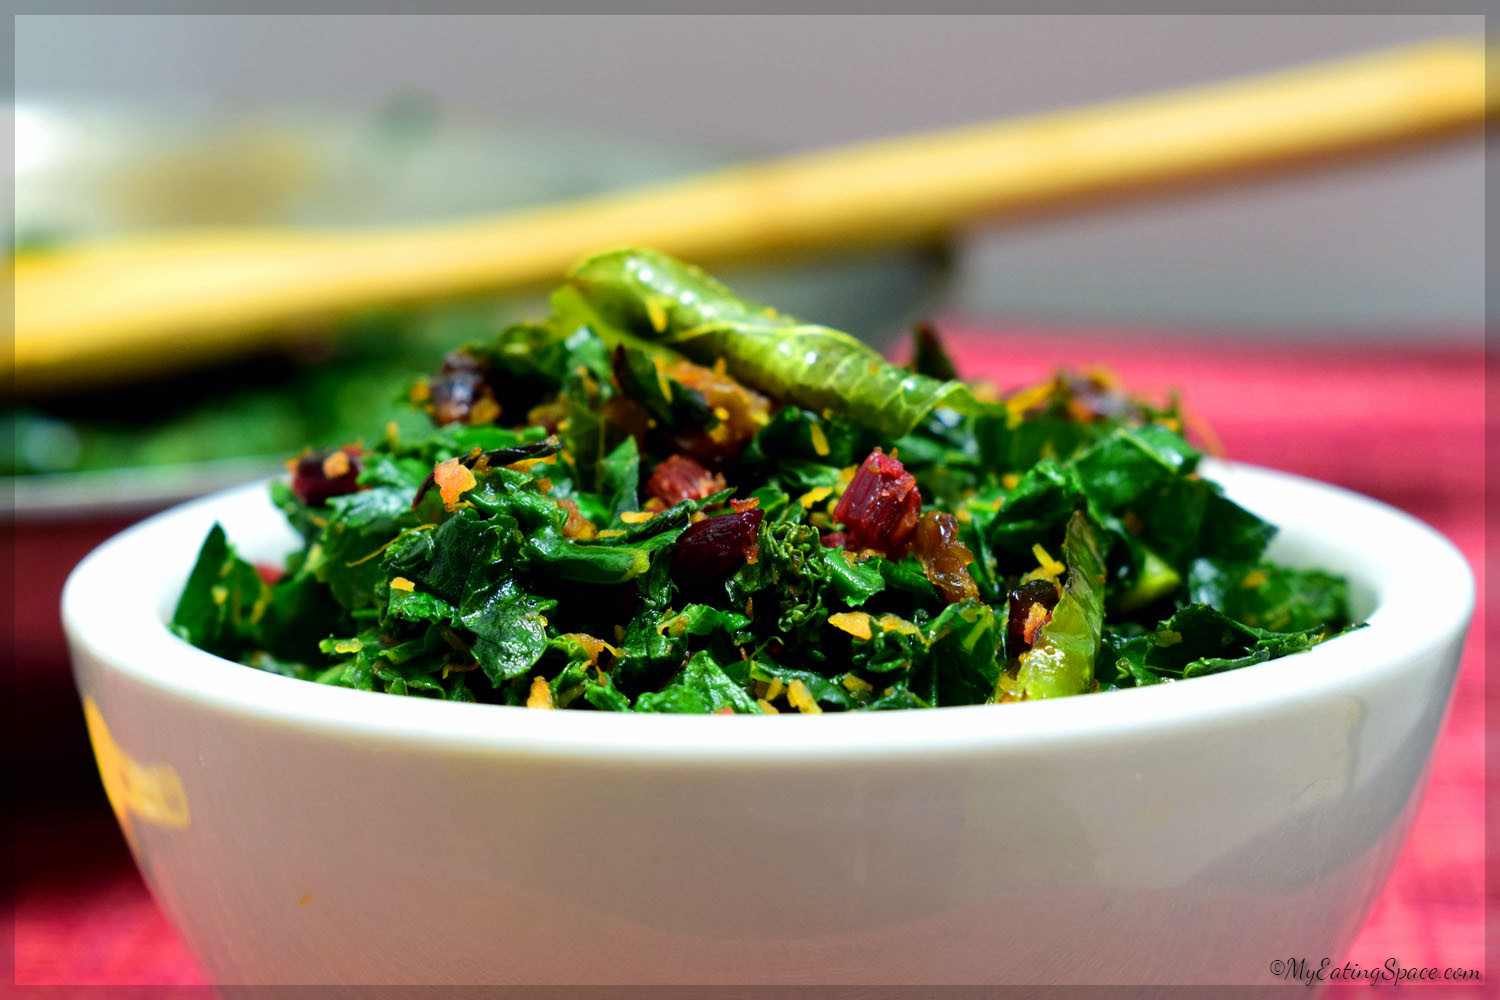 Sauteed Beet Greens and Kale - My Eating Space